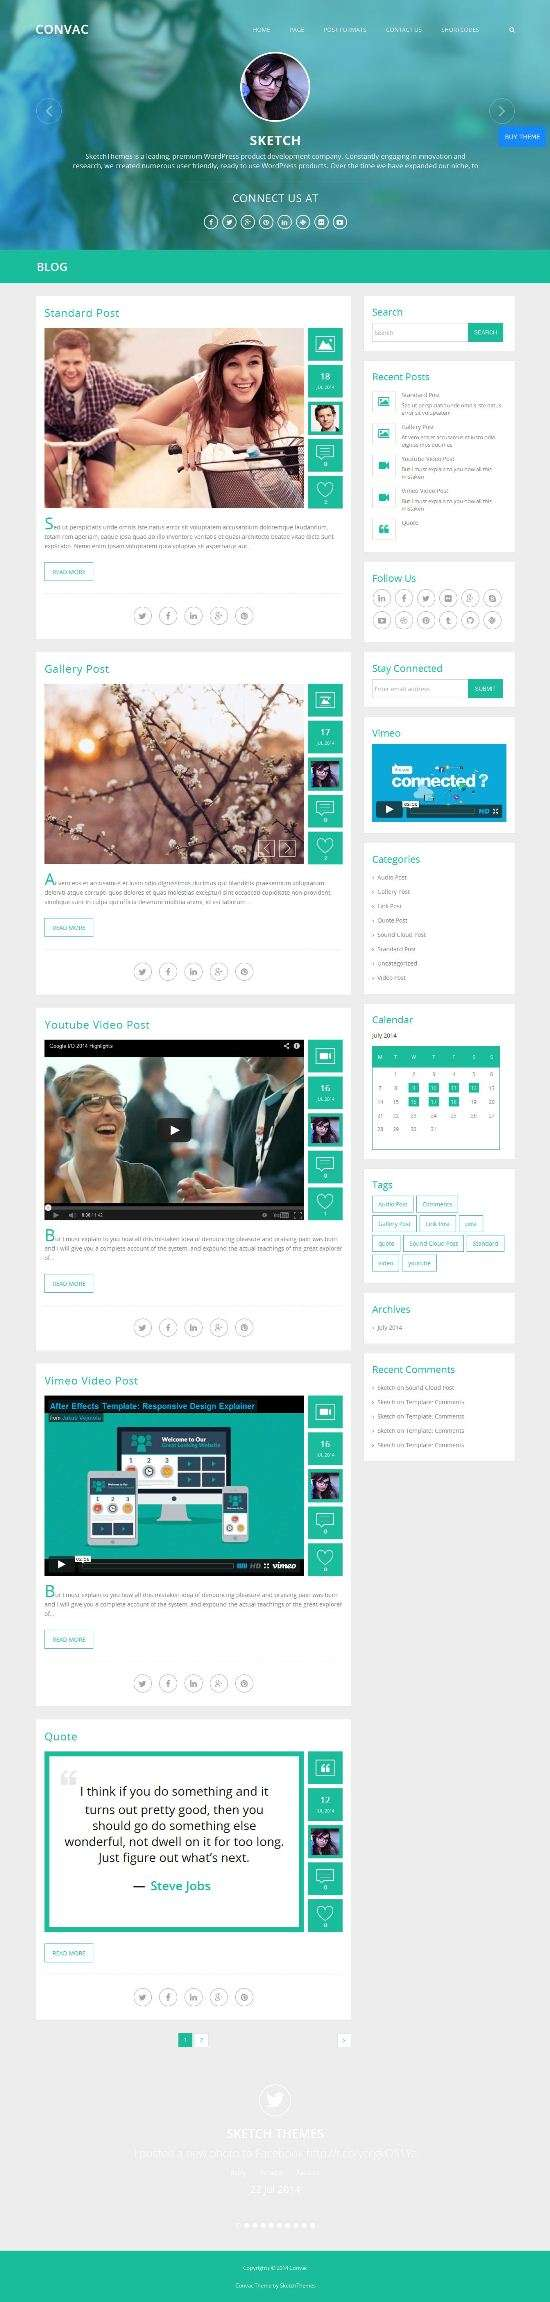 convac sketch themes avjthemescom 01 - Convac WordPress Theme